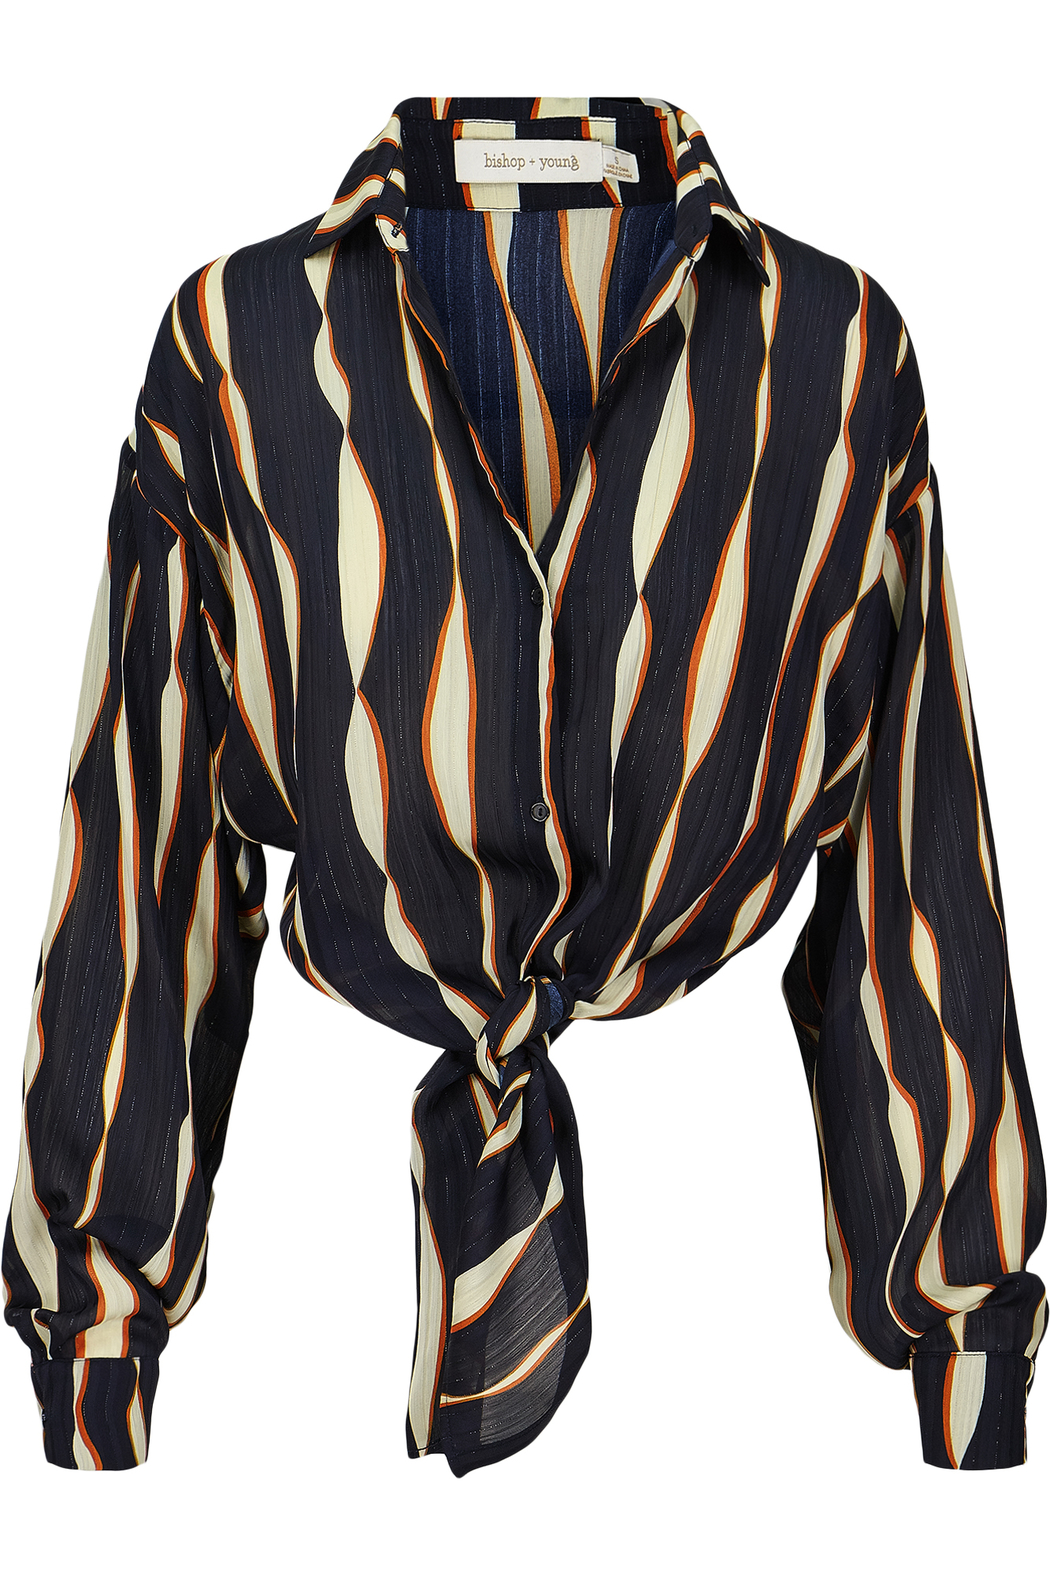 Bishop + Young Mara Print Tie Waist Blouse - Main Image